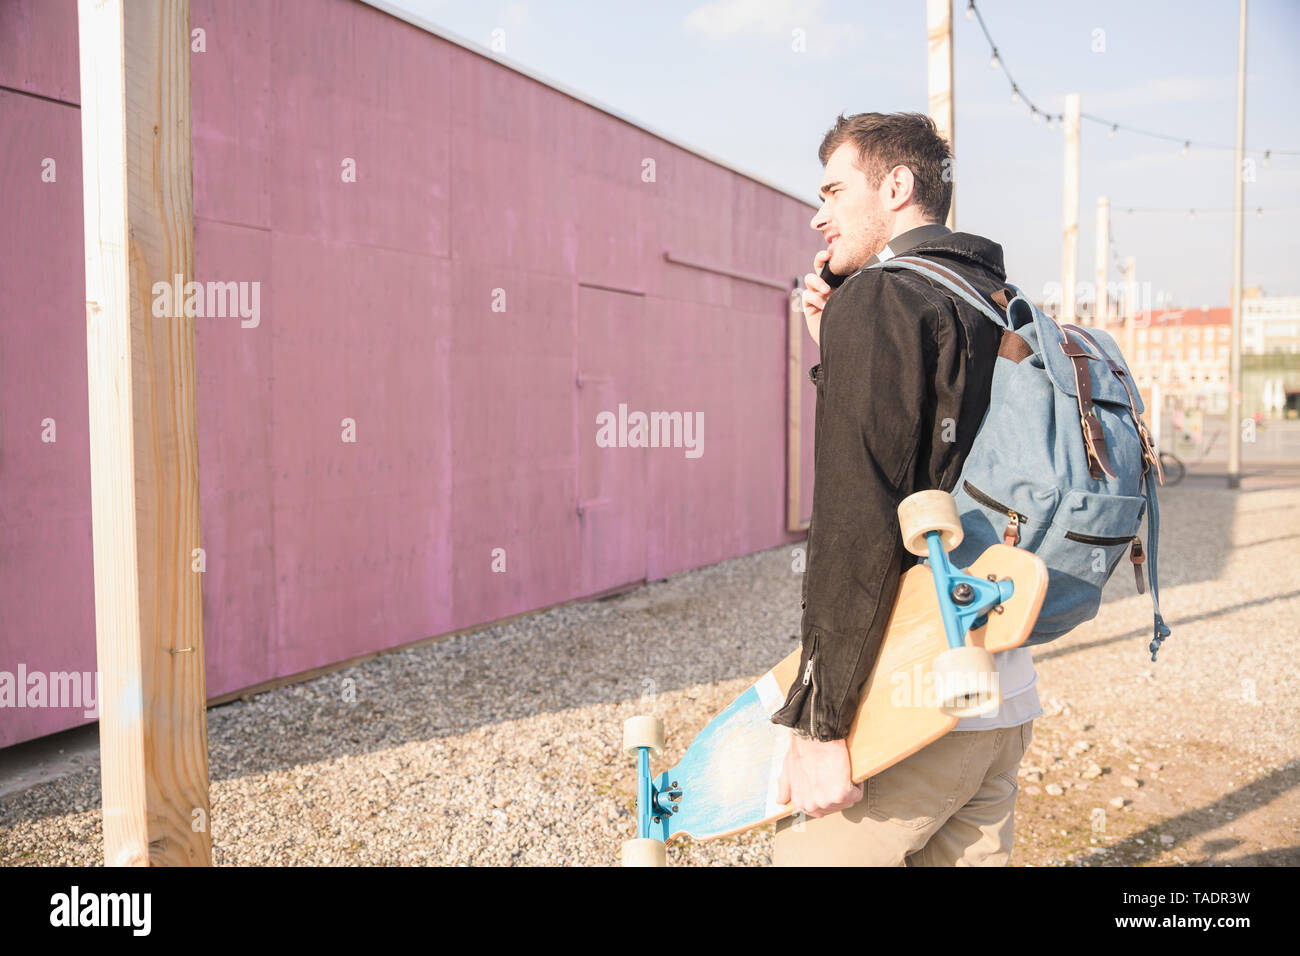 Young man with skatebaord and cell phone on the move in the city - Stock Image